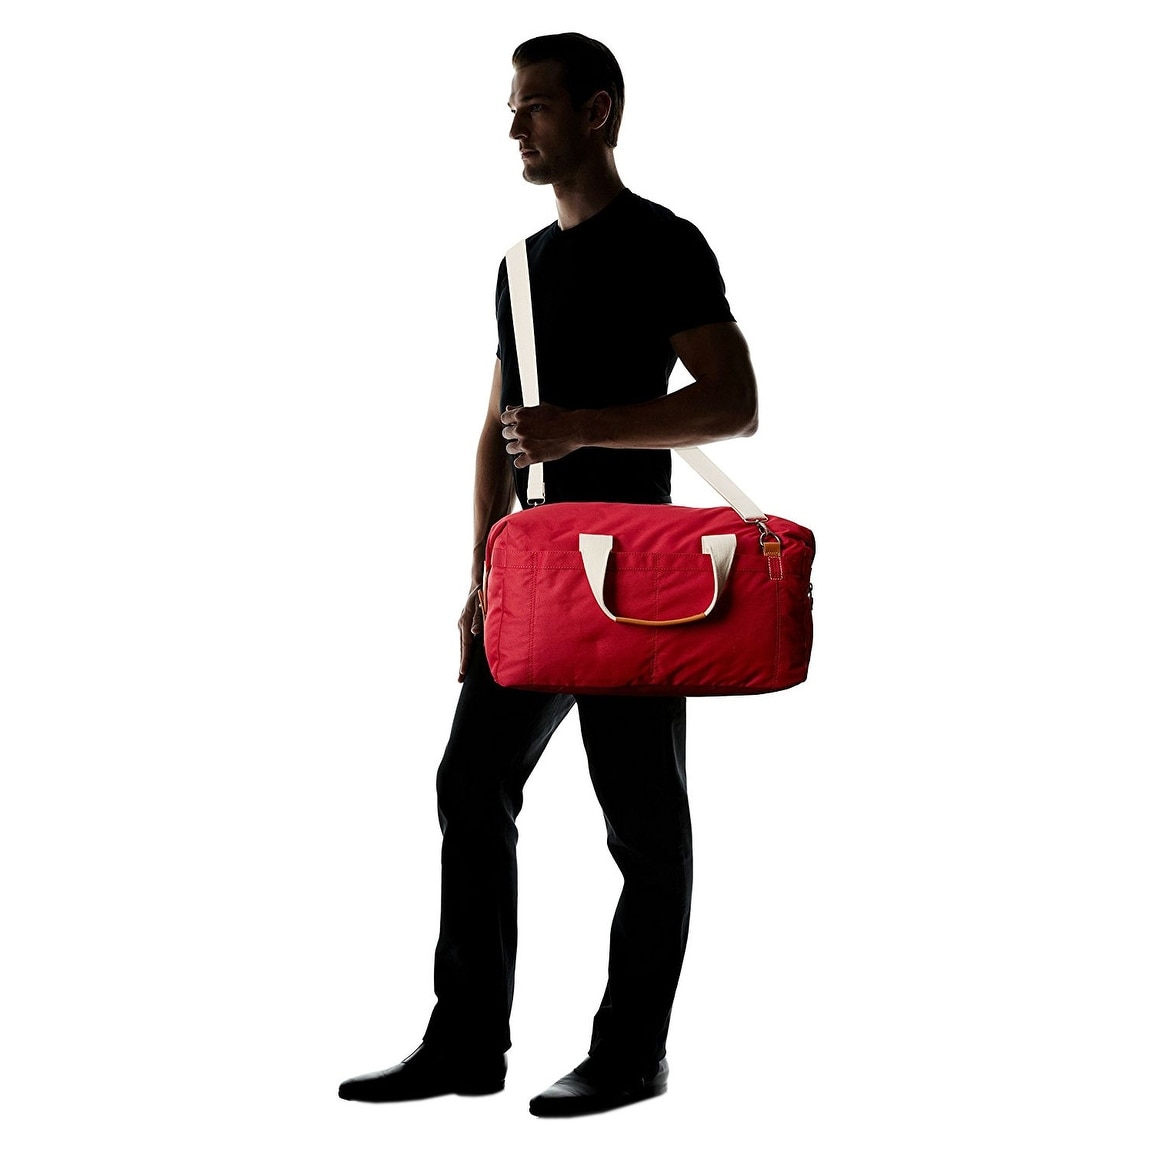 bb942a4858 Shop J. FOLD Montreal Men s Nylon Duffel Bag Red Solid One Size - Free  Shipping On Orders Over  45 - Overstock.com - 14357757